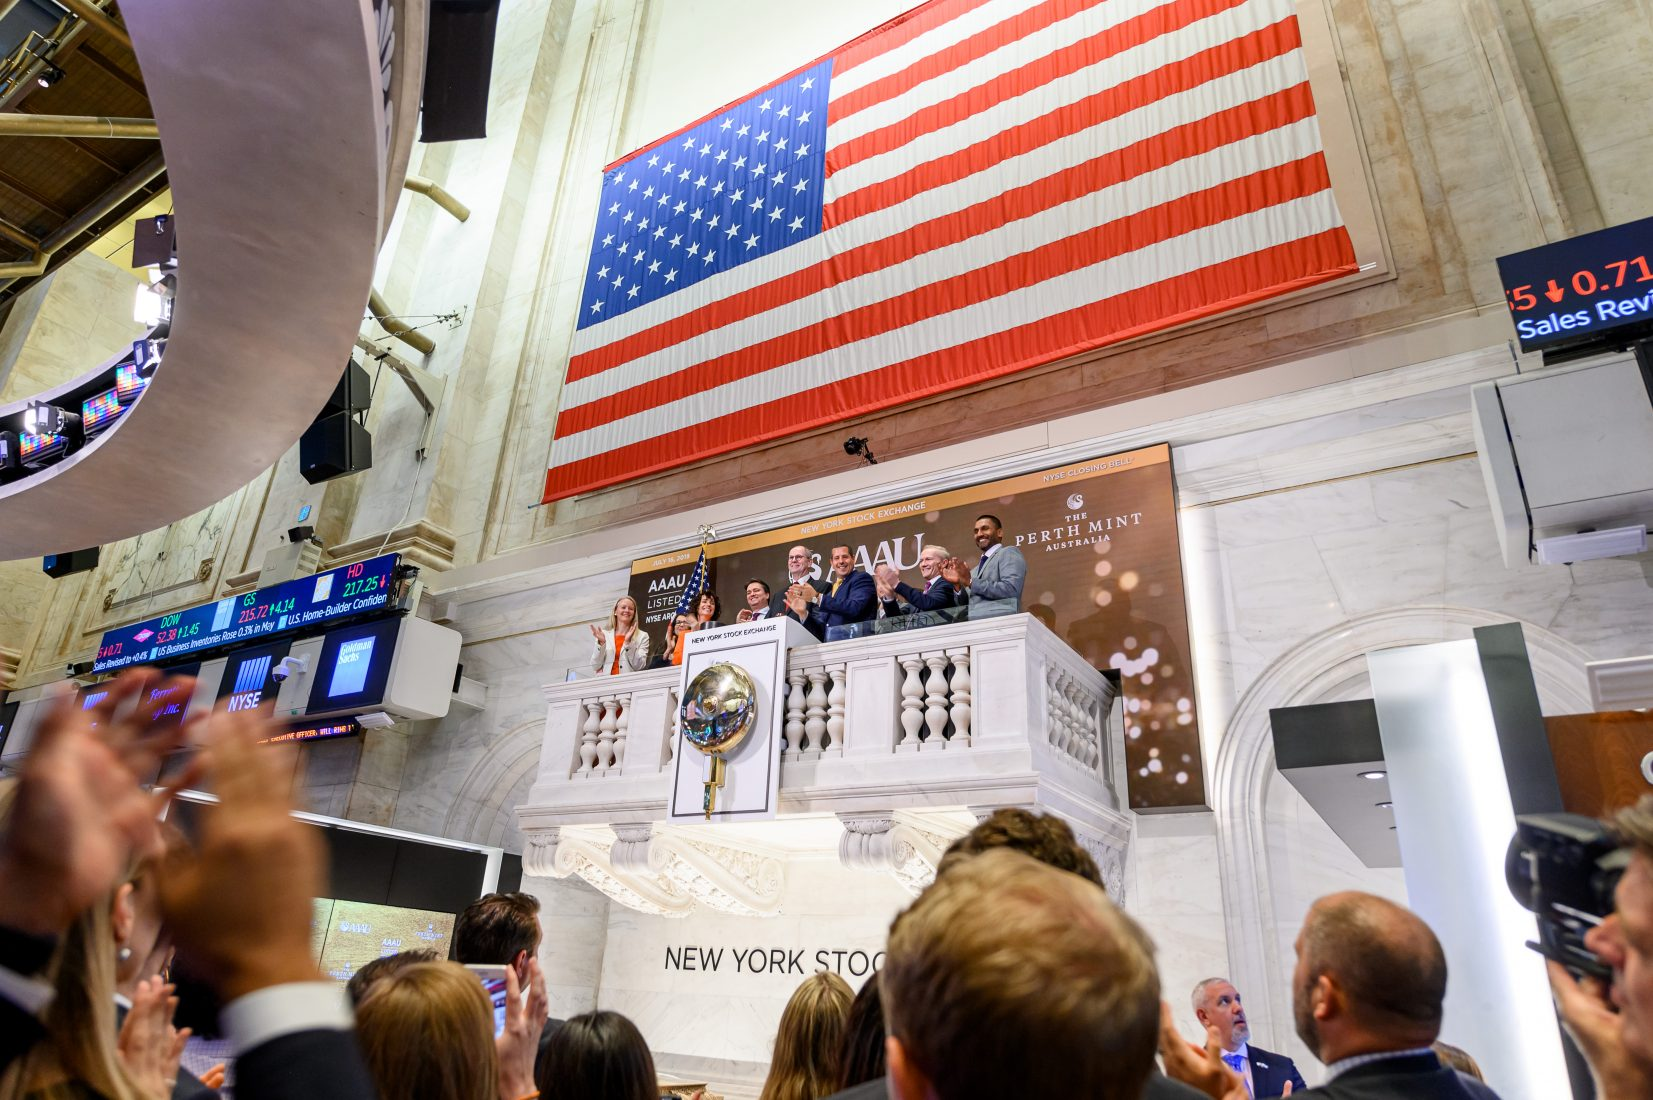 Perth Mint Brings Their Lucky Coin to NYSE